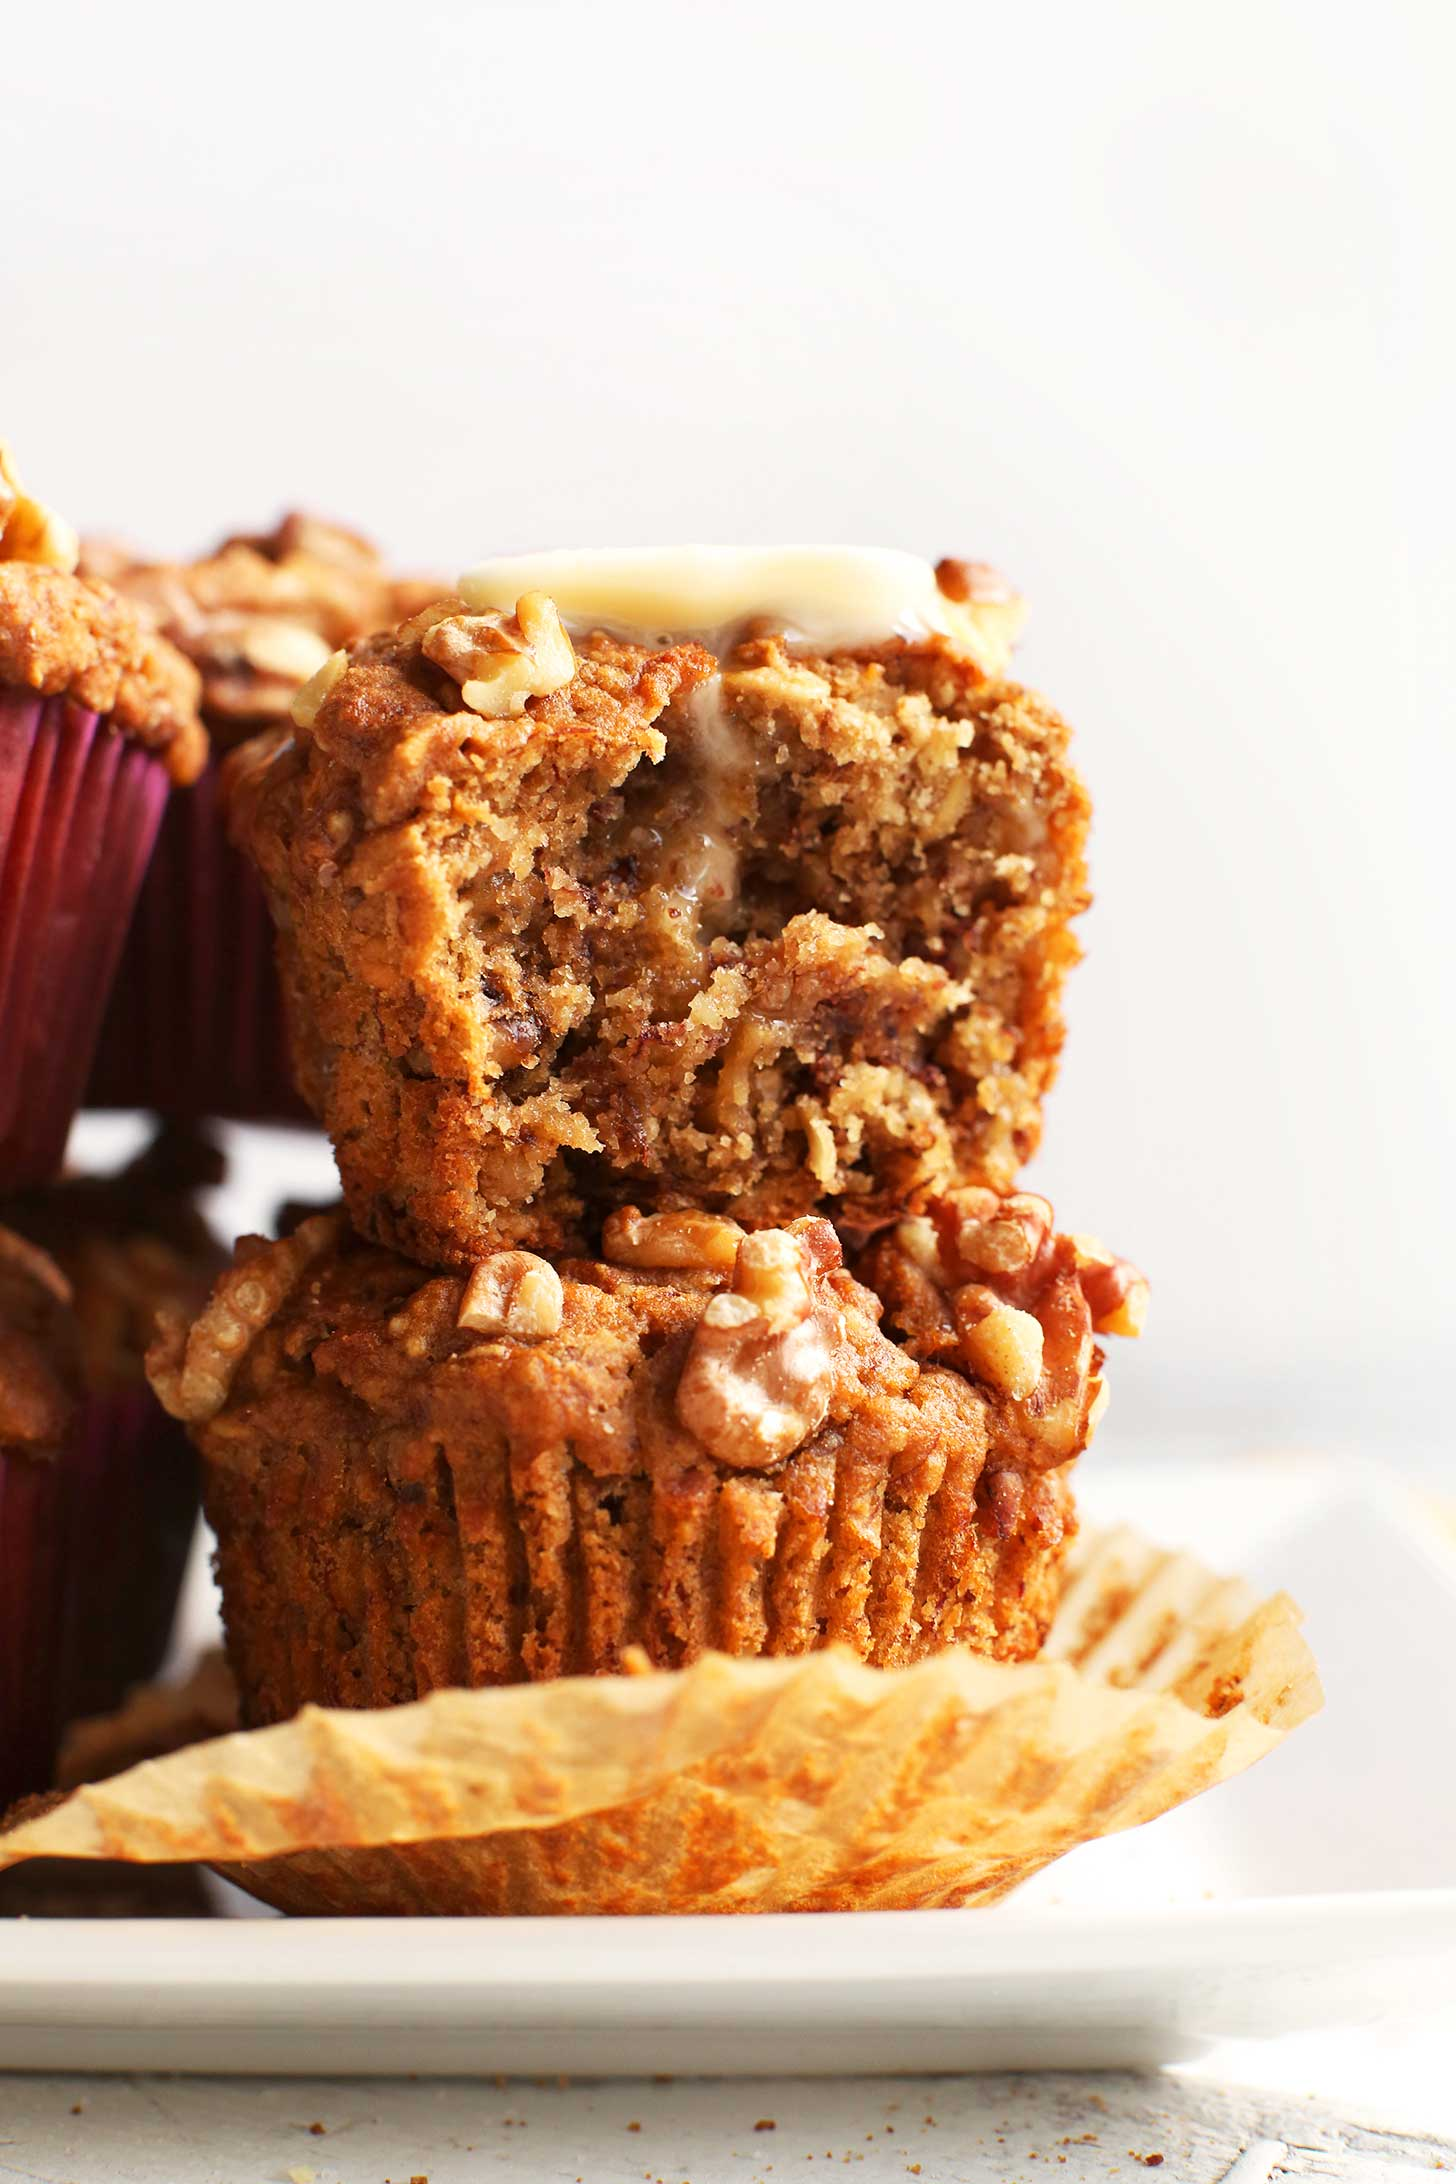 Stack of tasty Vegan Gluten-Free Banana Nut Muffins